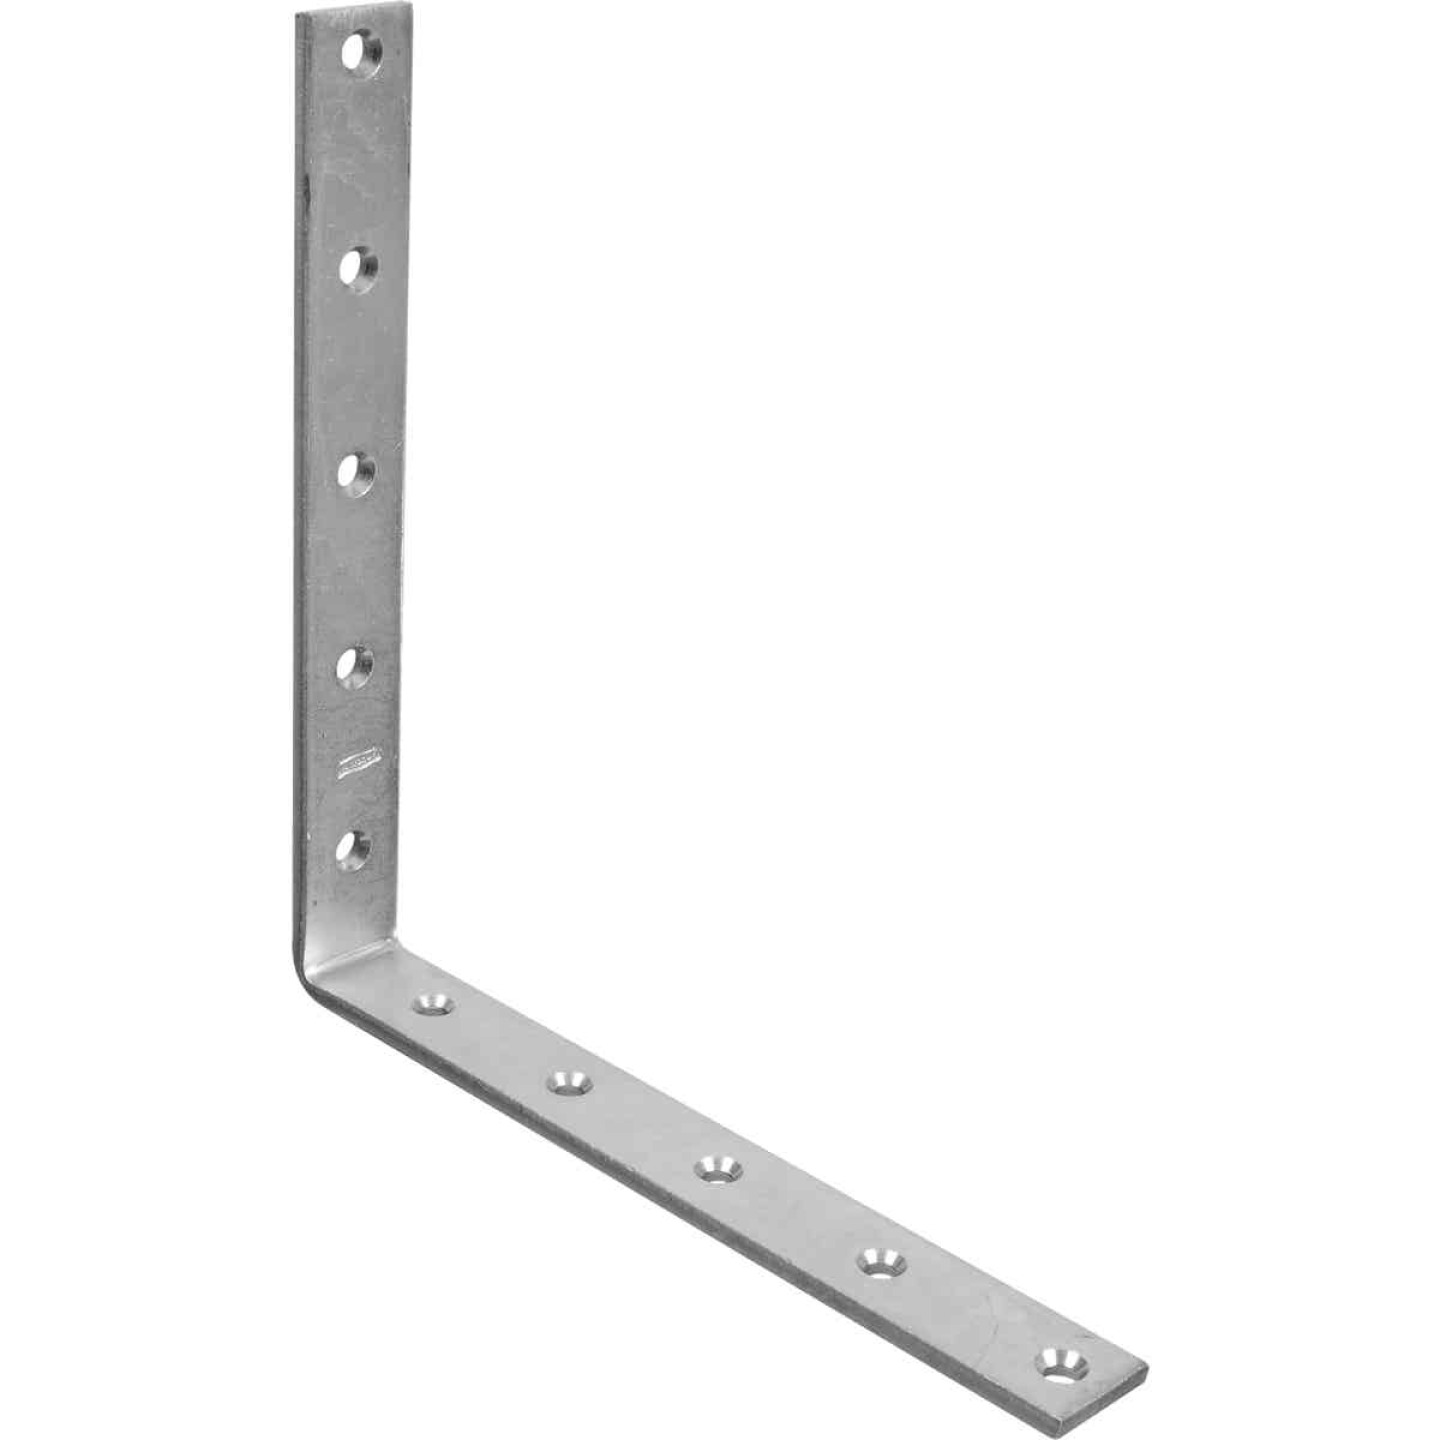 National Catalog 115 10 In. x 1/4 In. Zinc Corner Brace Image 1